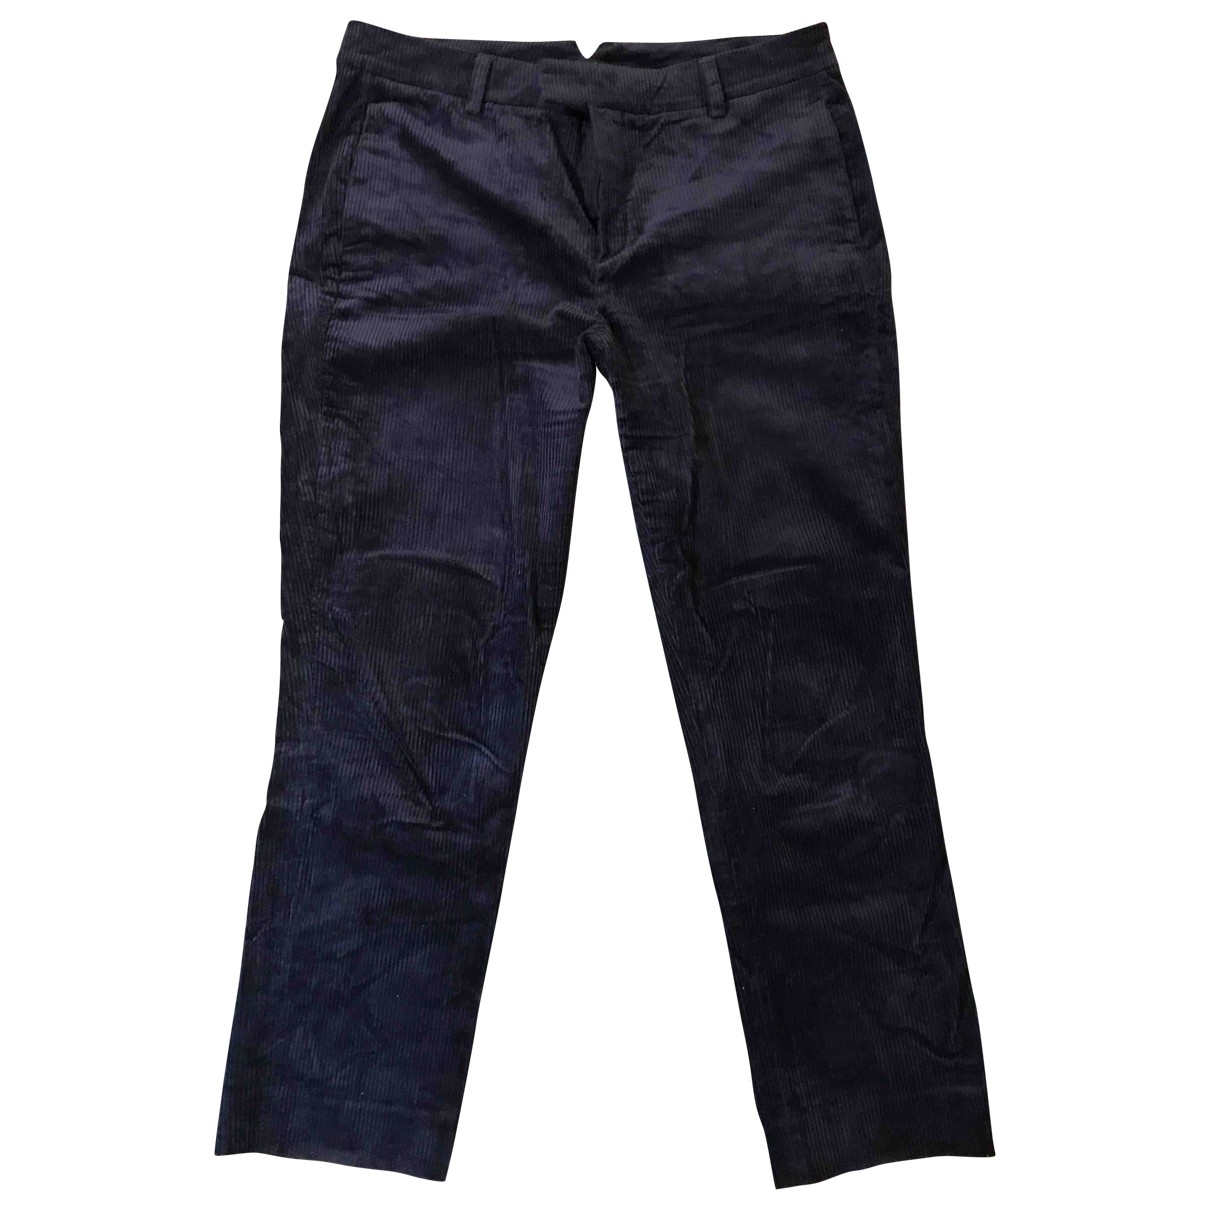 Massimo Dutti \N Navy Cotton Trousers for Women 8 US